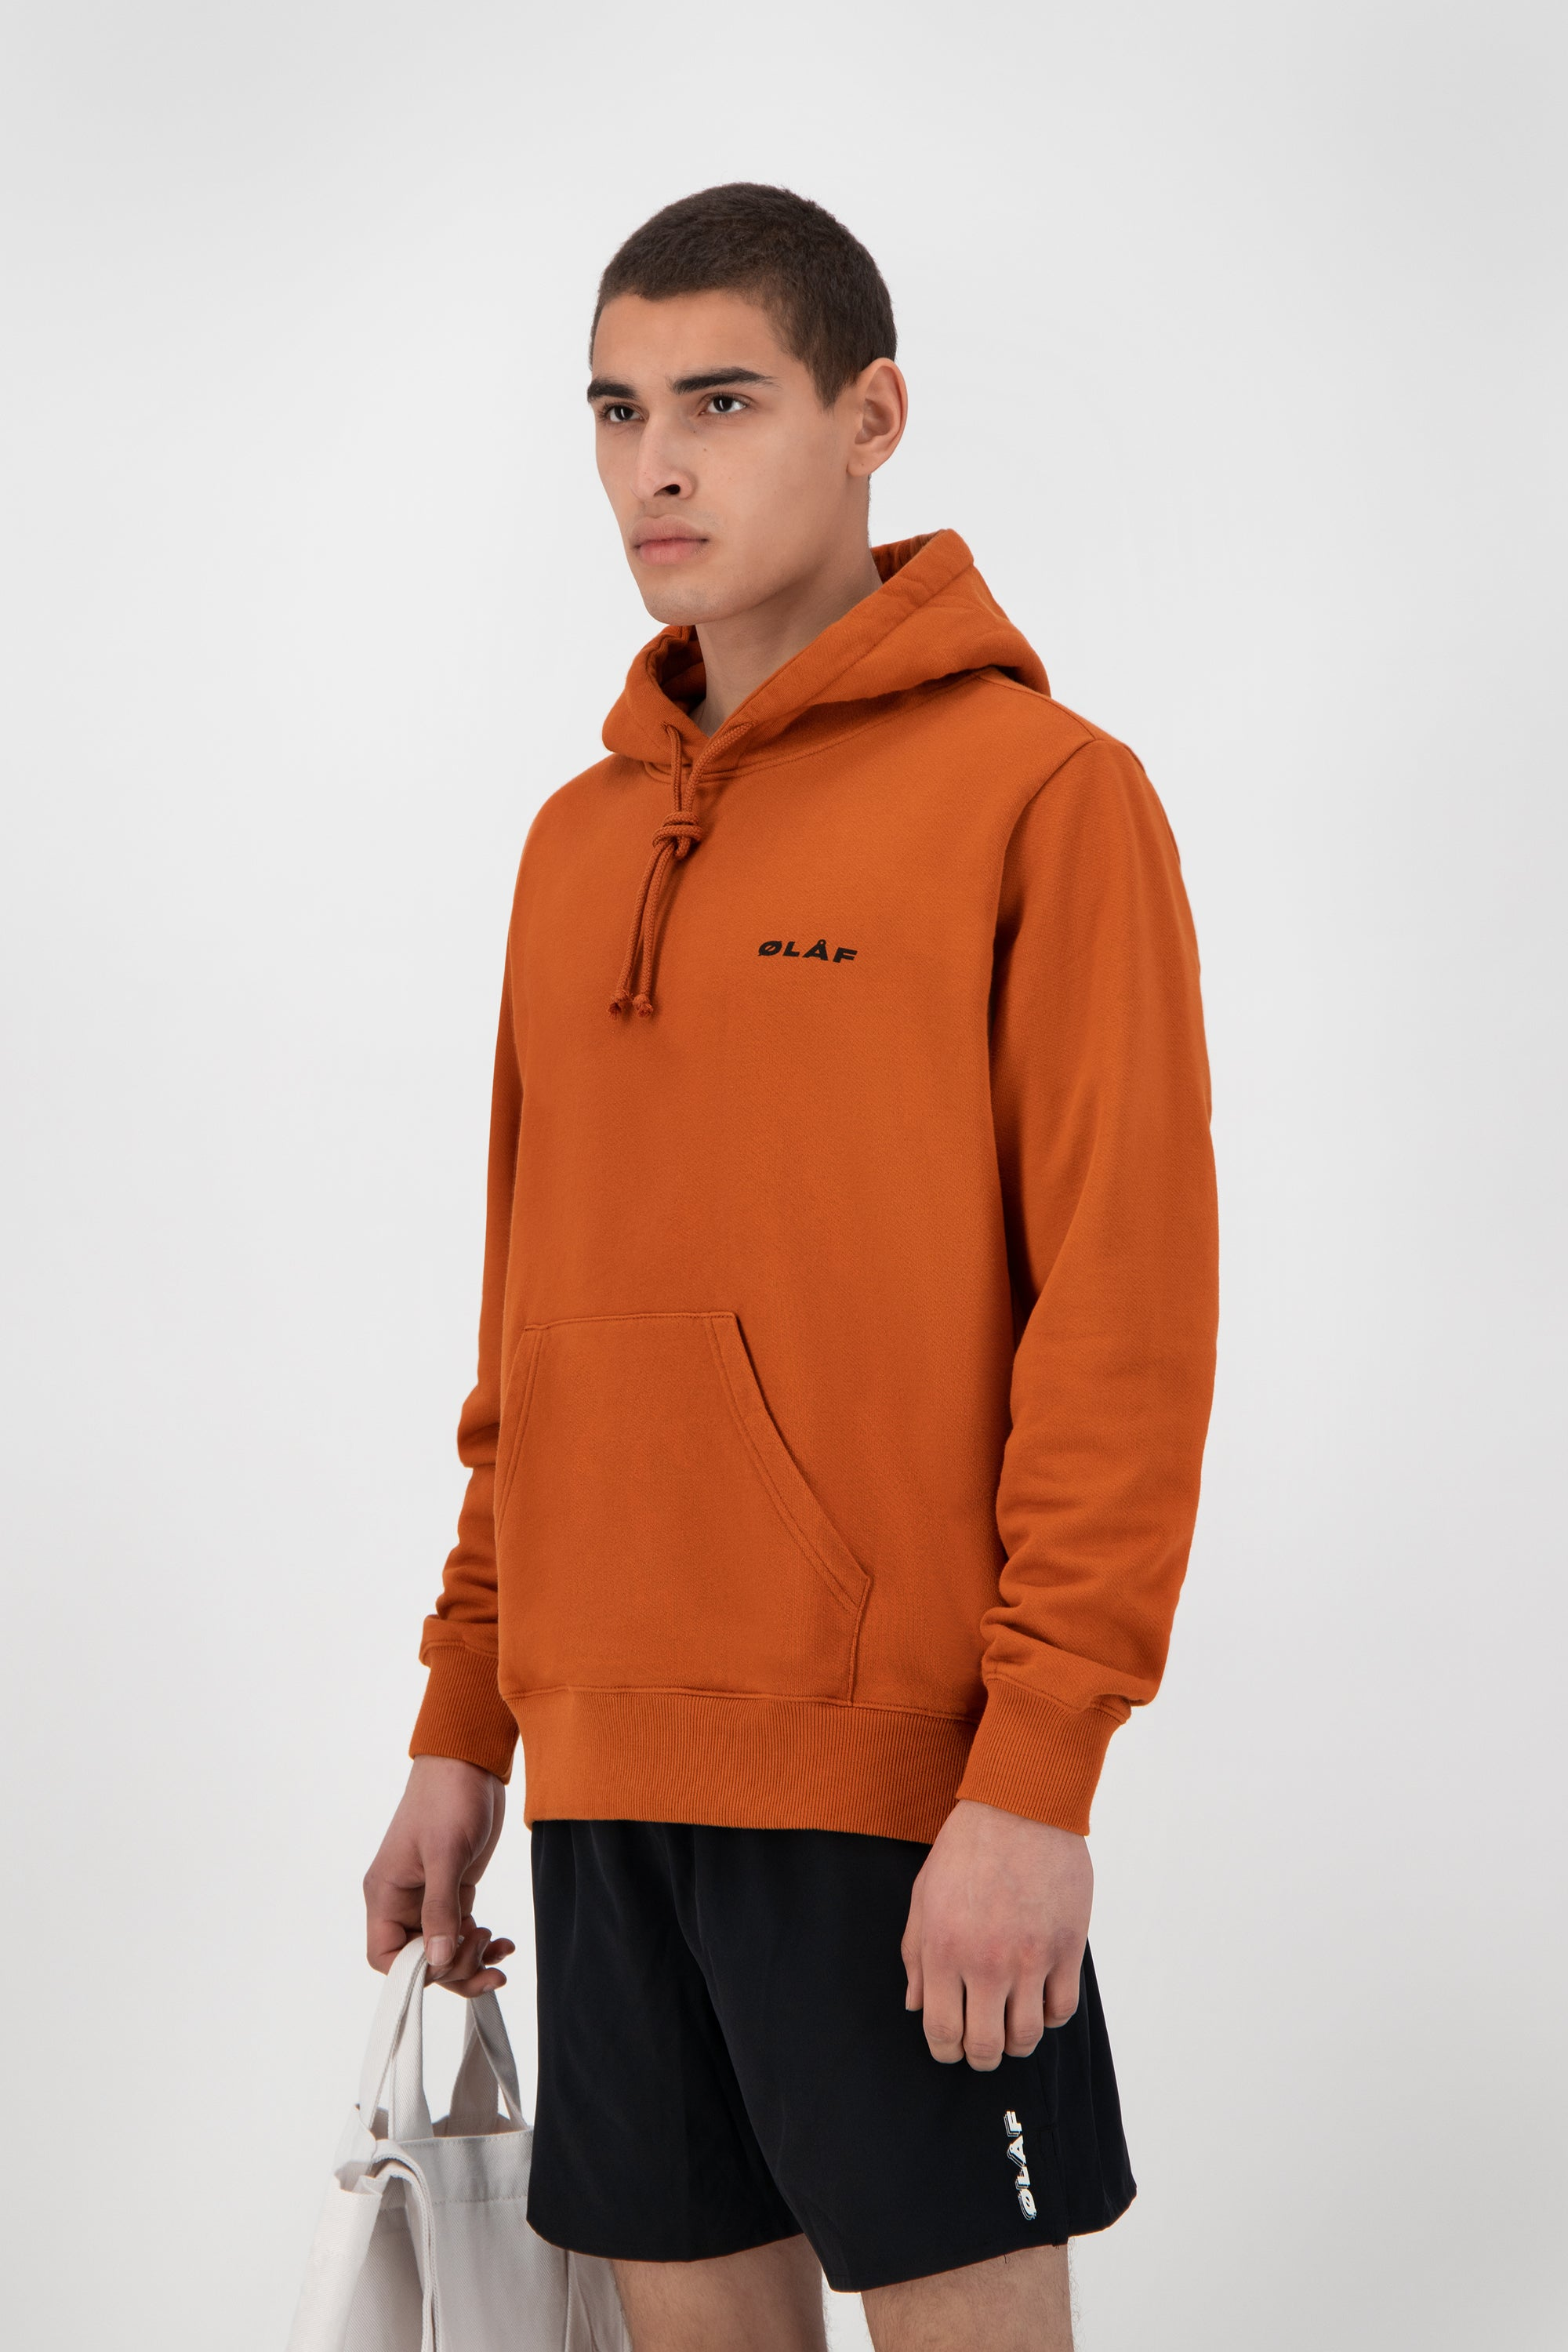 ØLÅF Uniform Hoodie <br>Burnt Orange